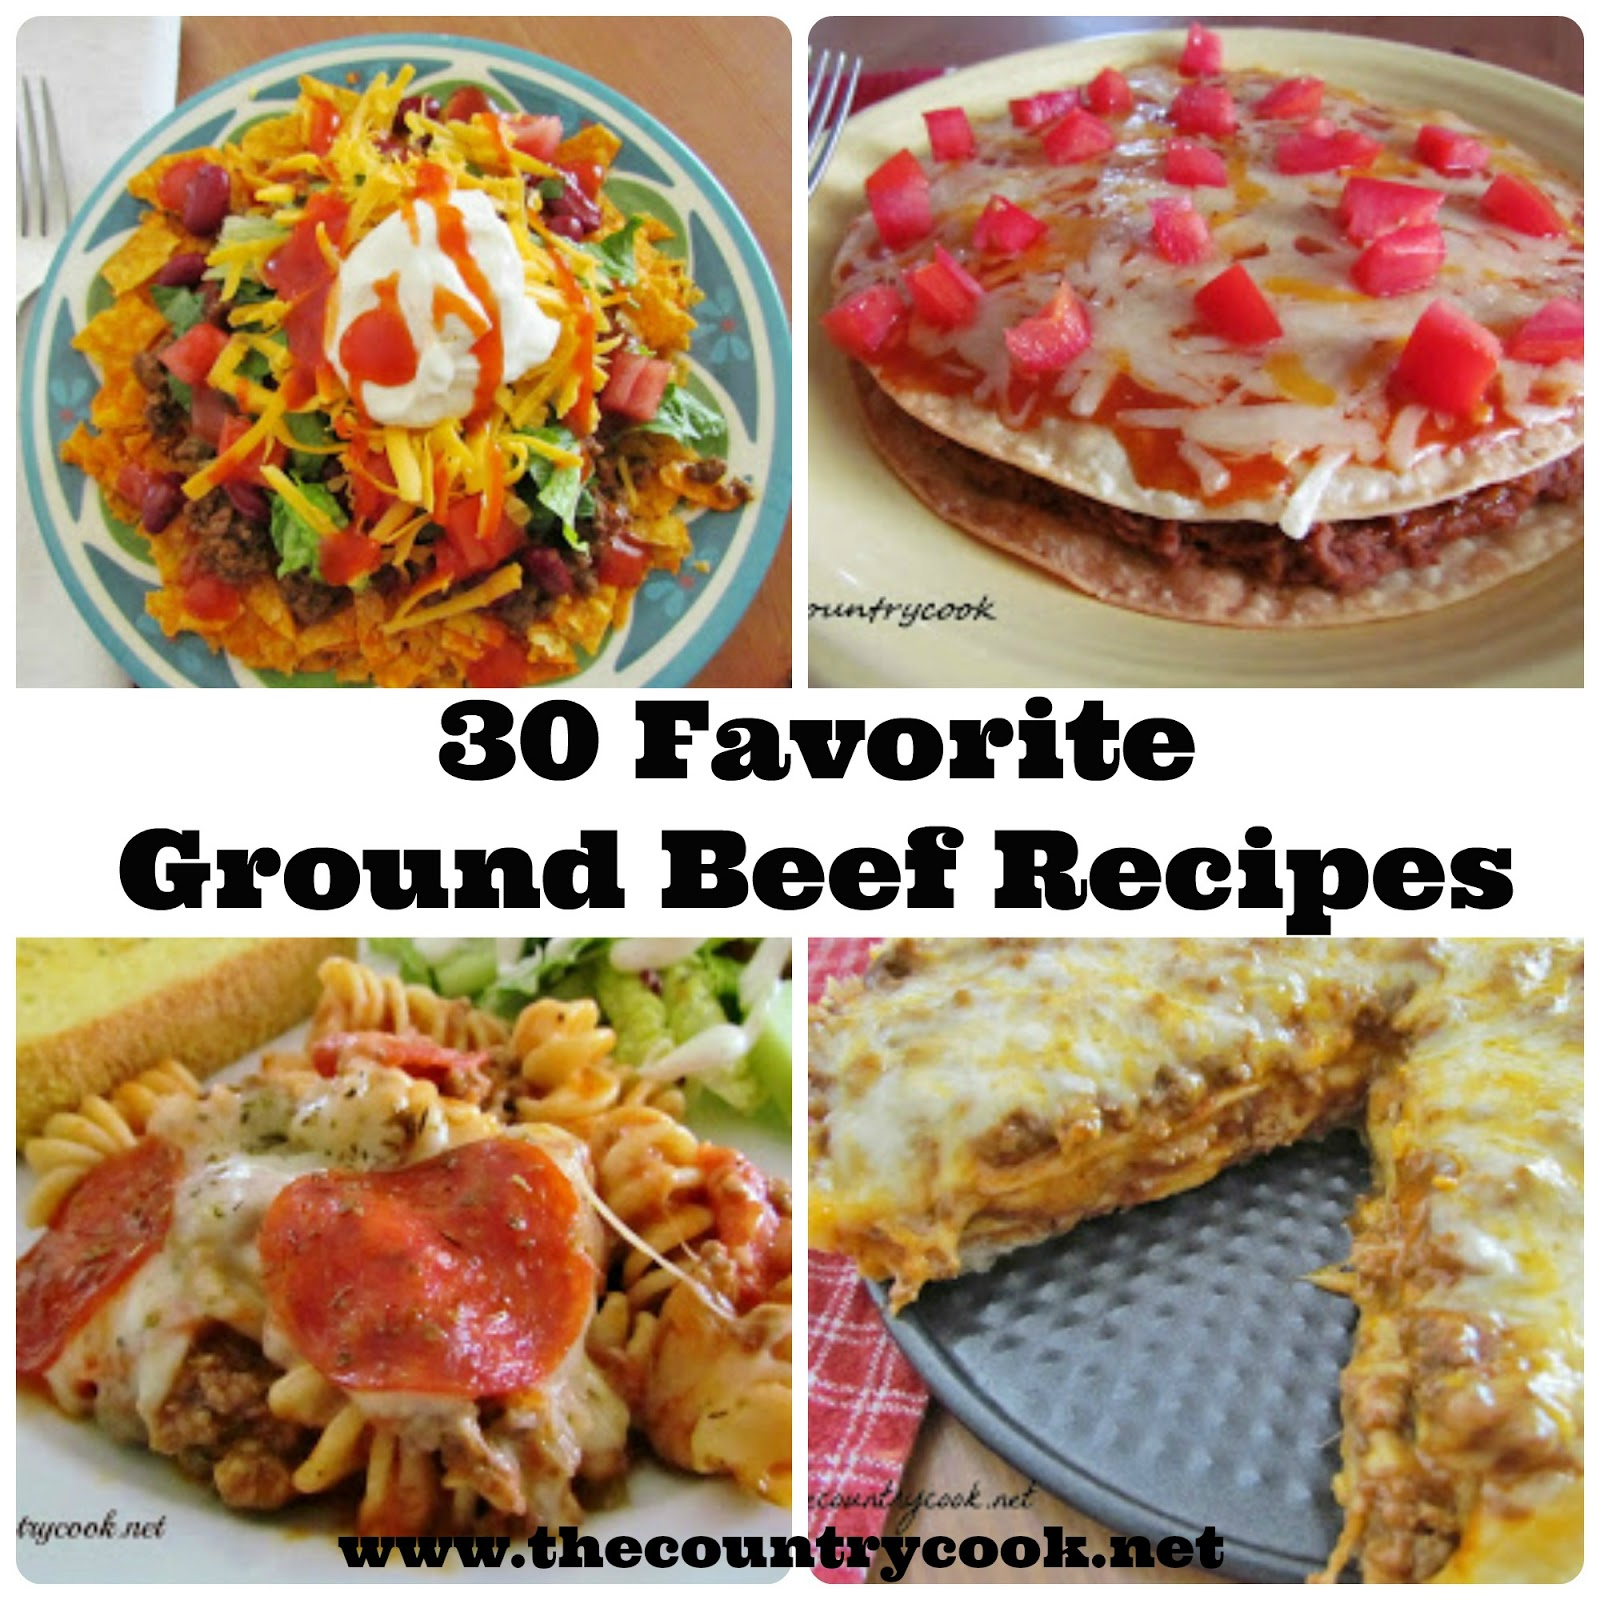 30 favorite ground beef recipes the country cook for What to make with hamburger meat for dinner